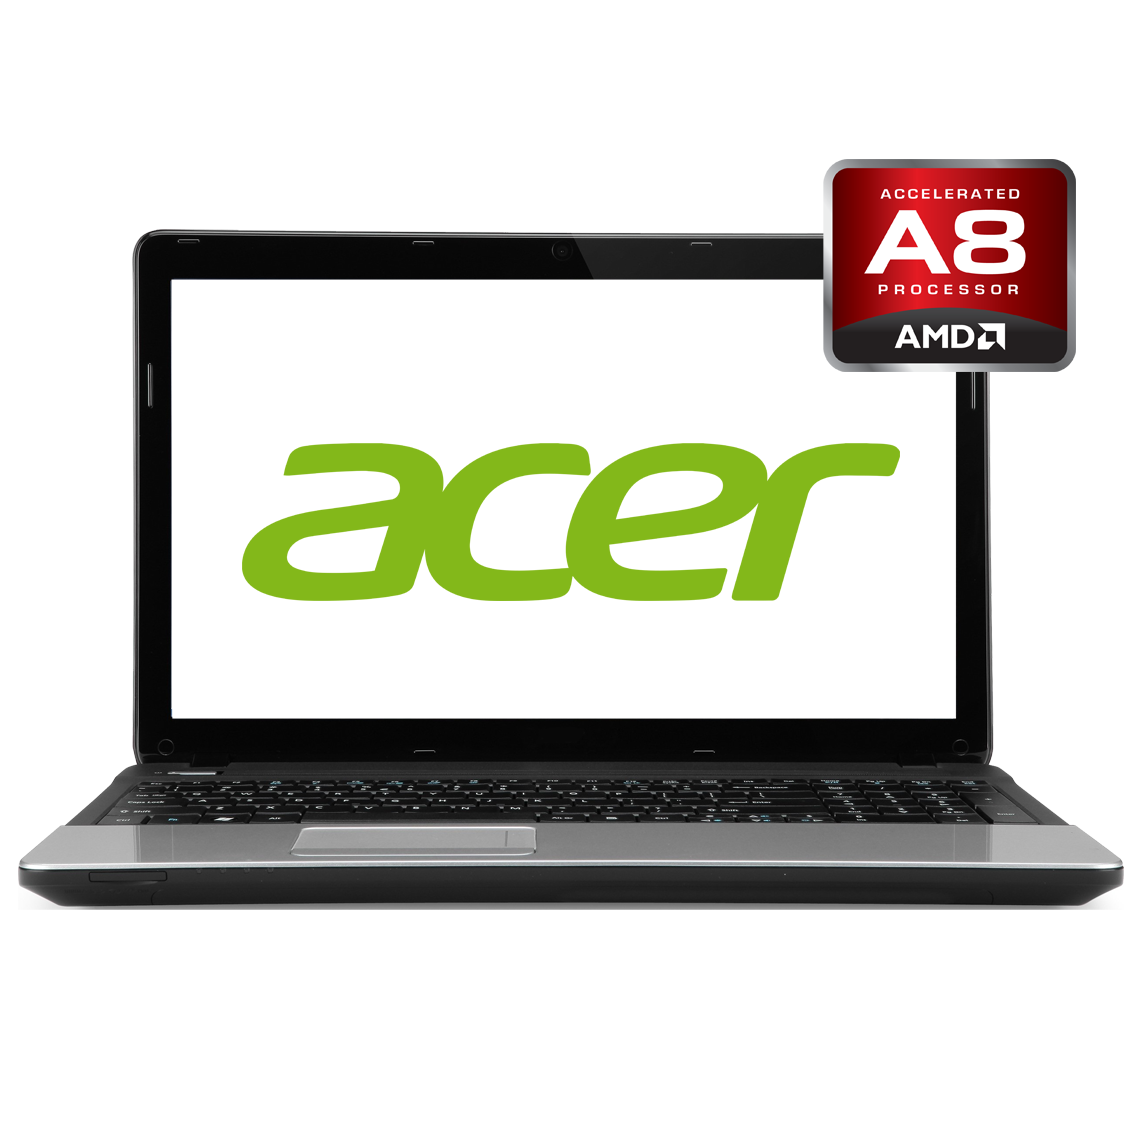 Acer - 14 inch AMD A8